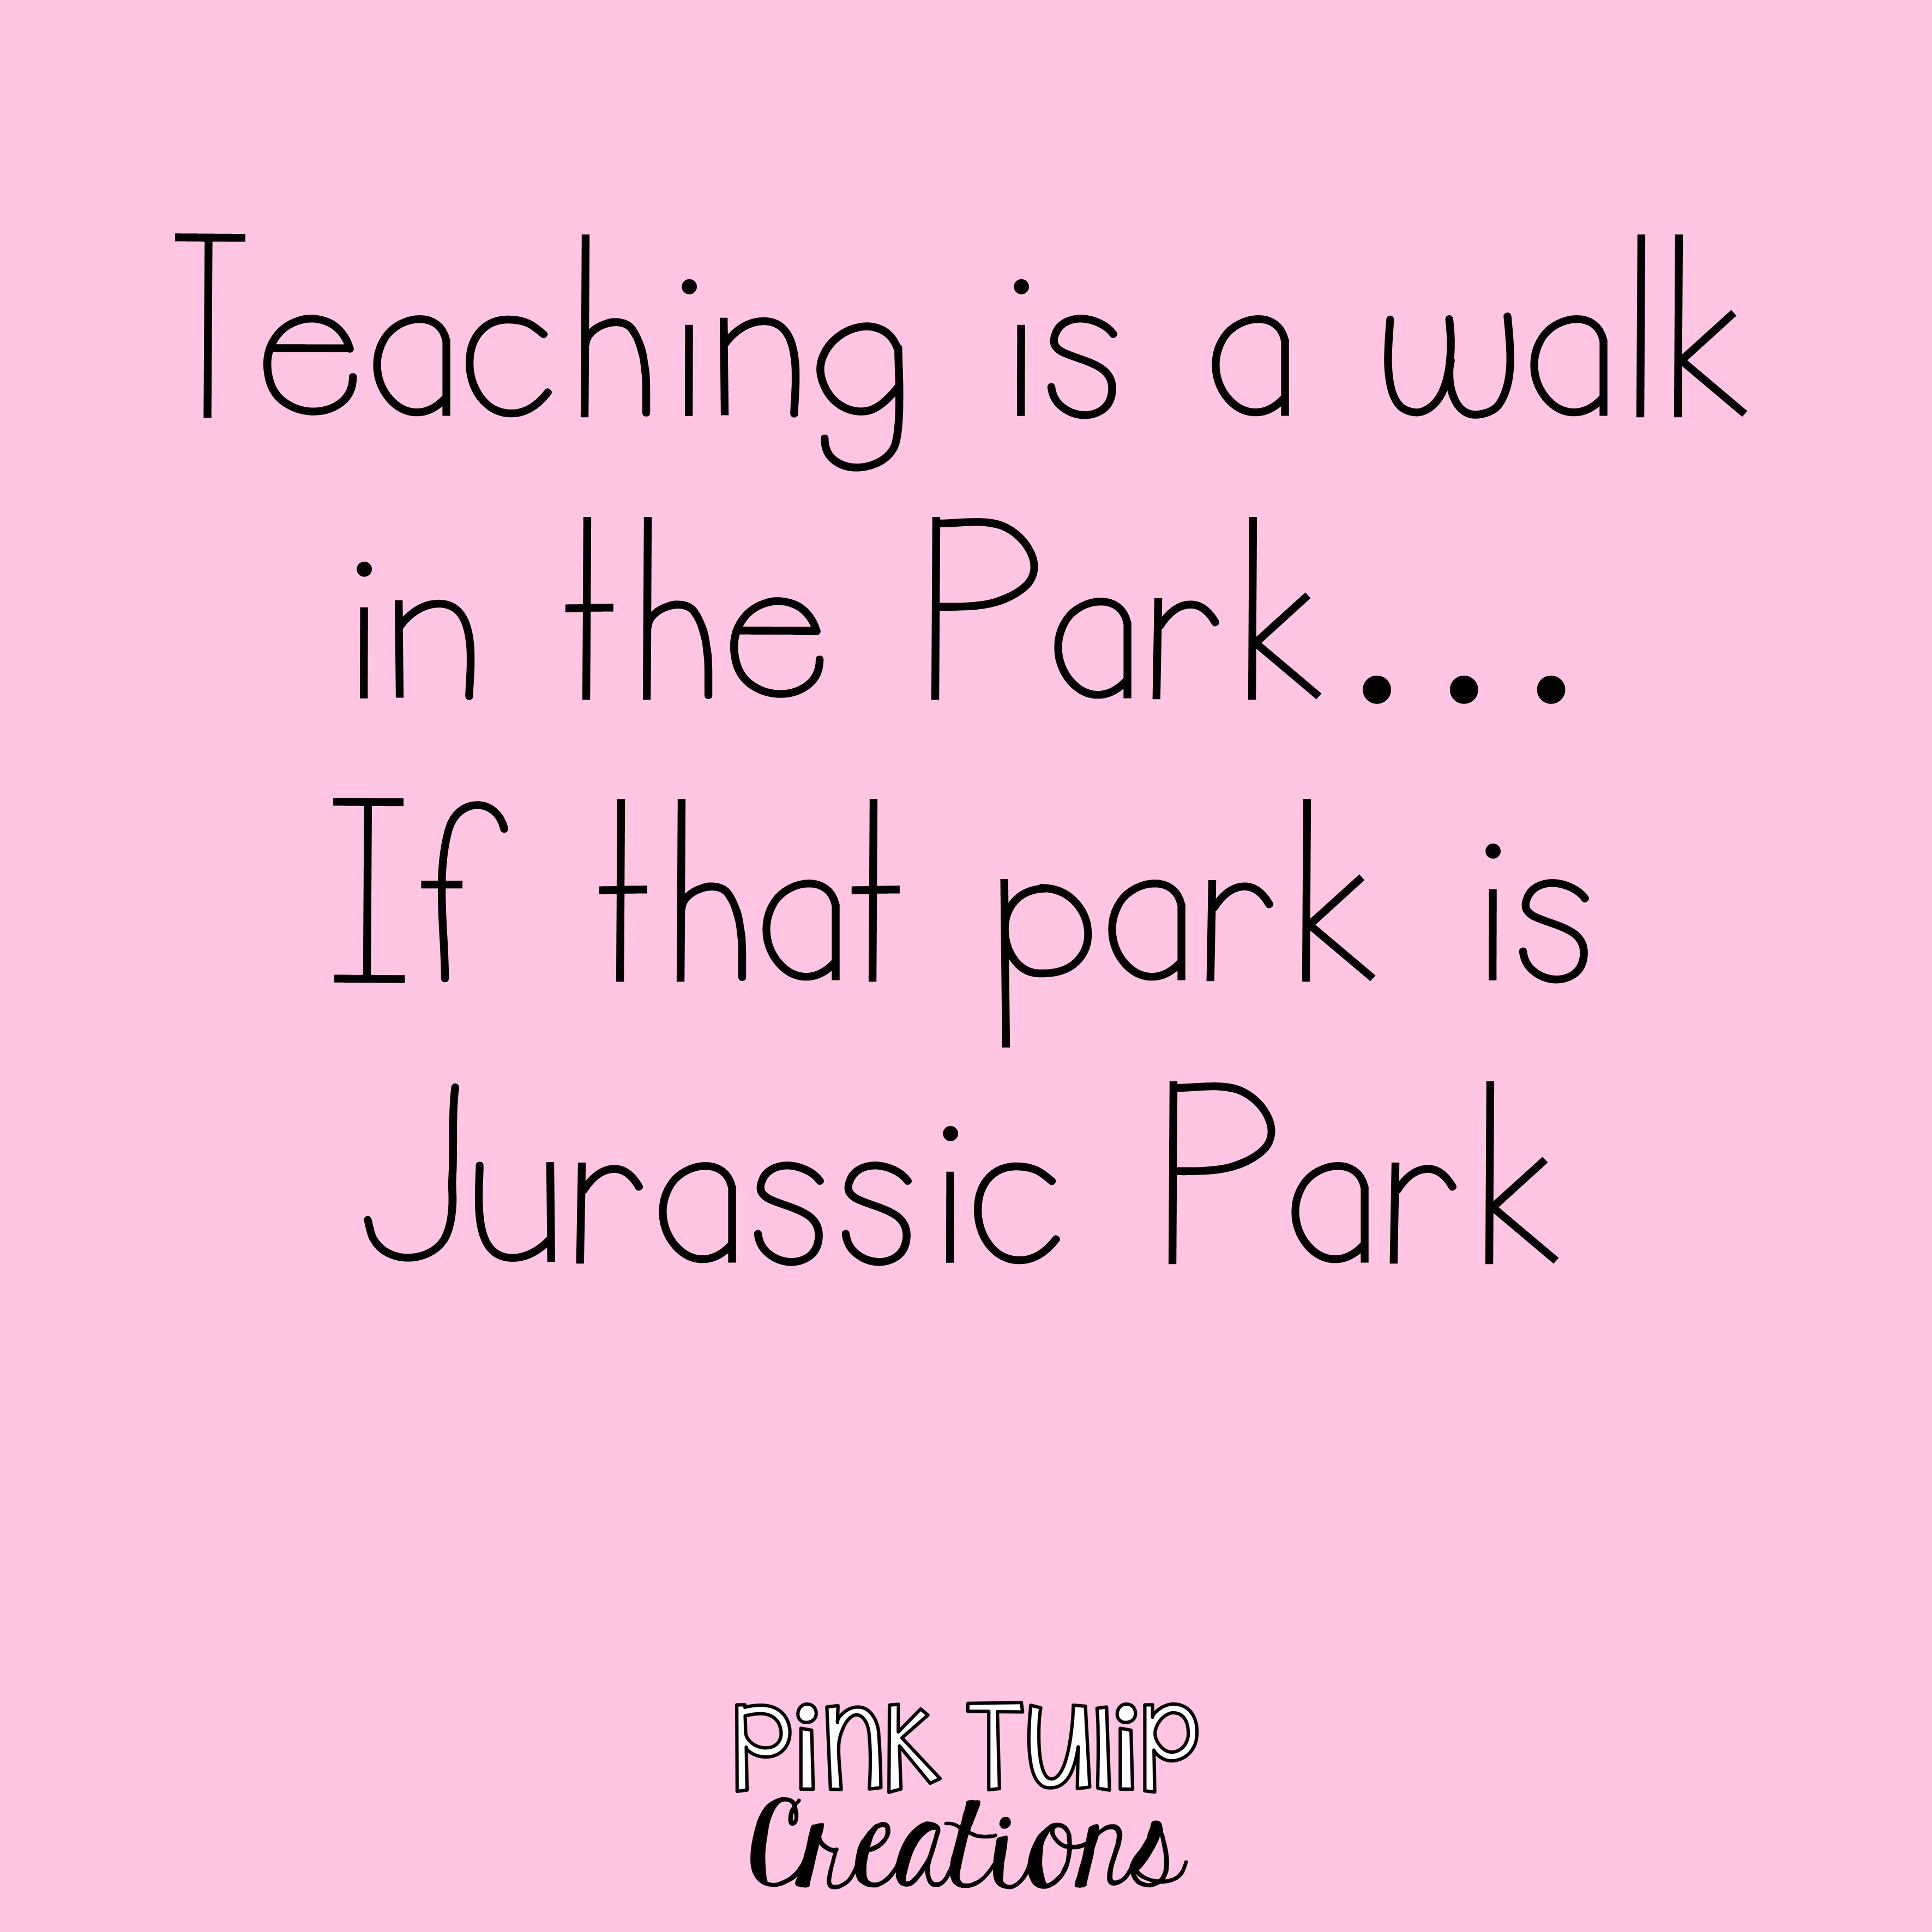 Teaching Quotes Education Learning Teacher Children School Classroom Funny Teacher Quotes Funny Teacher Jokes Preschool Teacher Quotes